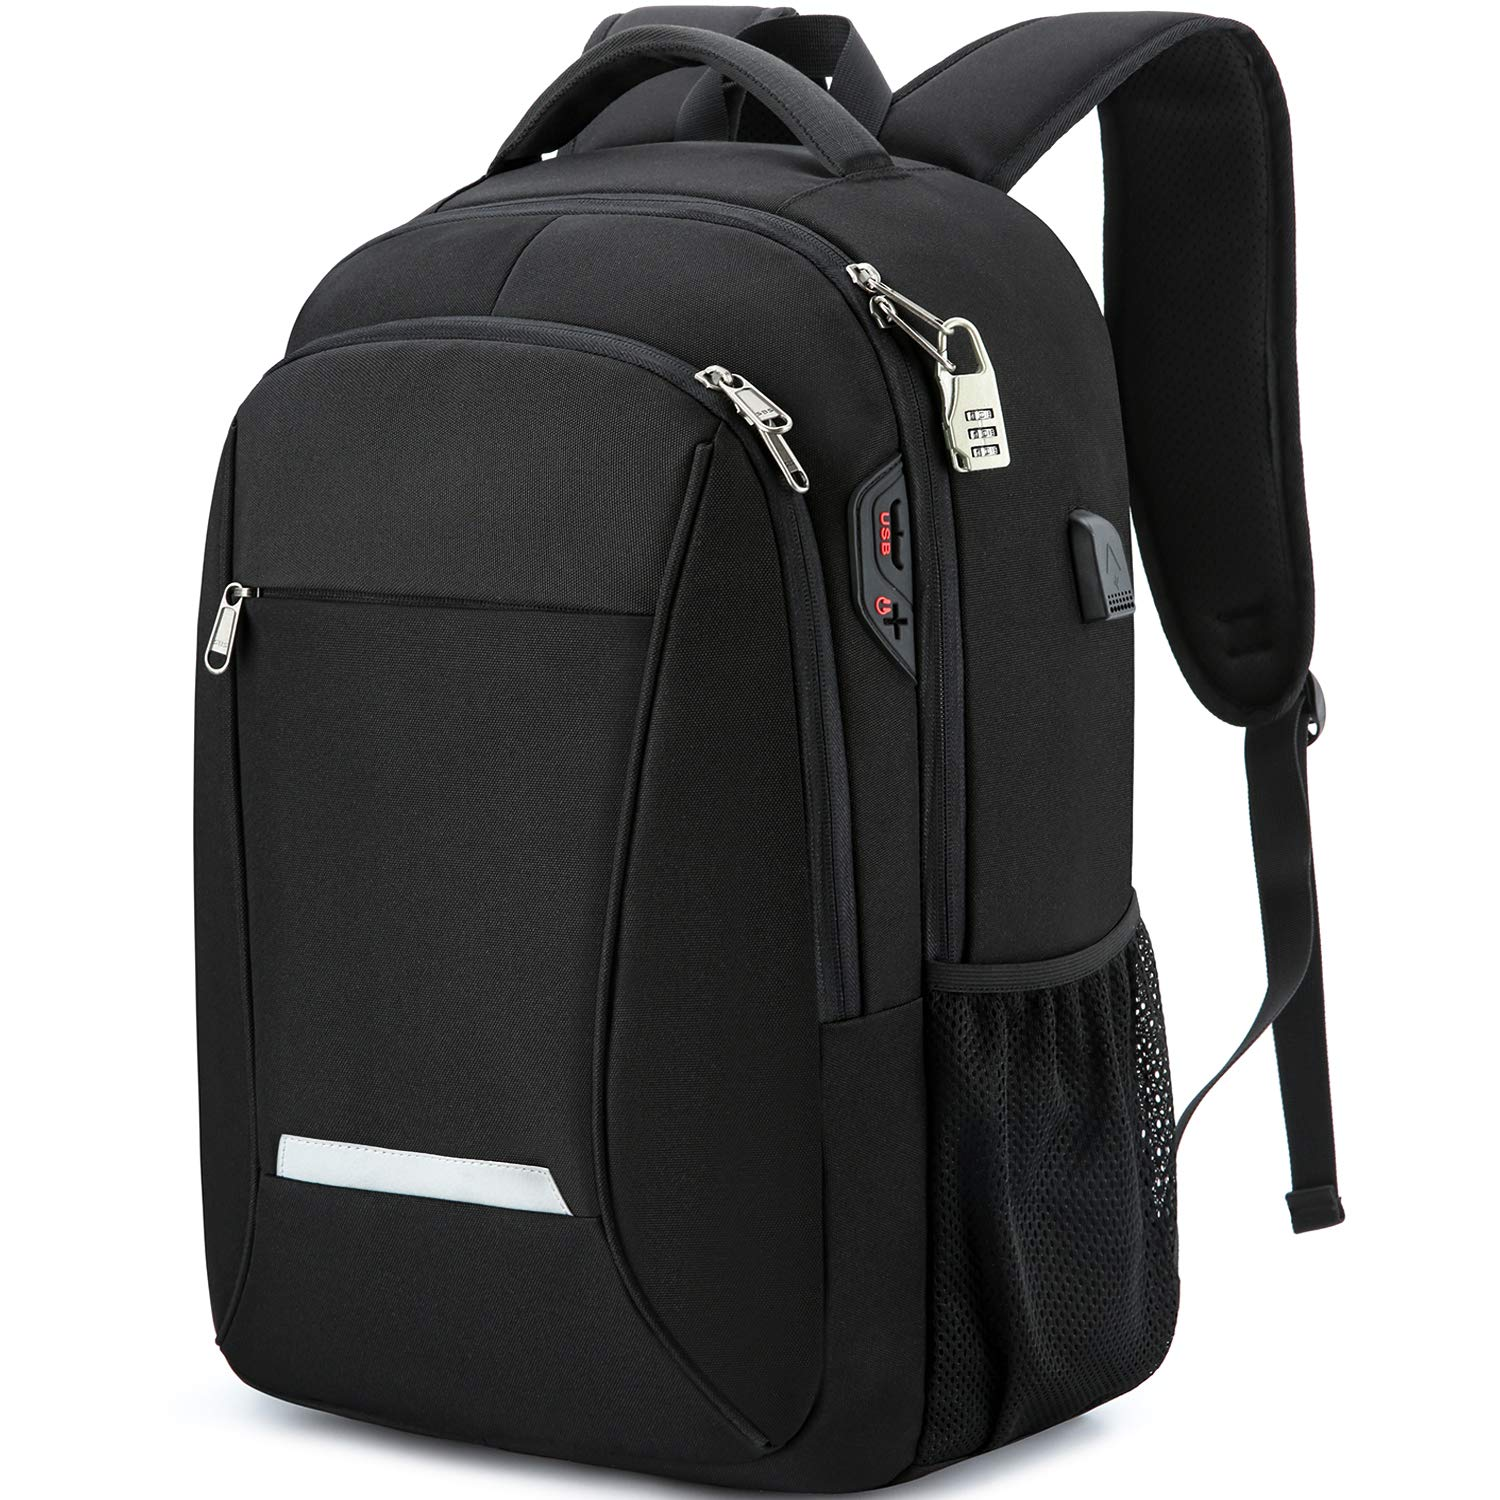 XQXA Laptop Backpack, Travel Business Backpack for Men & Women with USB Charging Port, Water Resistant Anti Theft School College Computer Back Pack Bag Fits Up to 17 Inch Notebook - Black